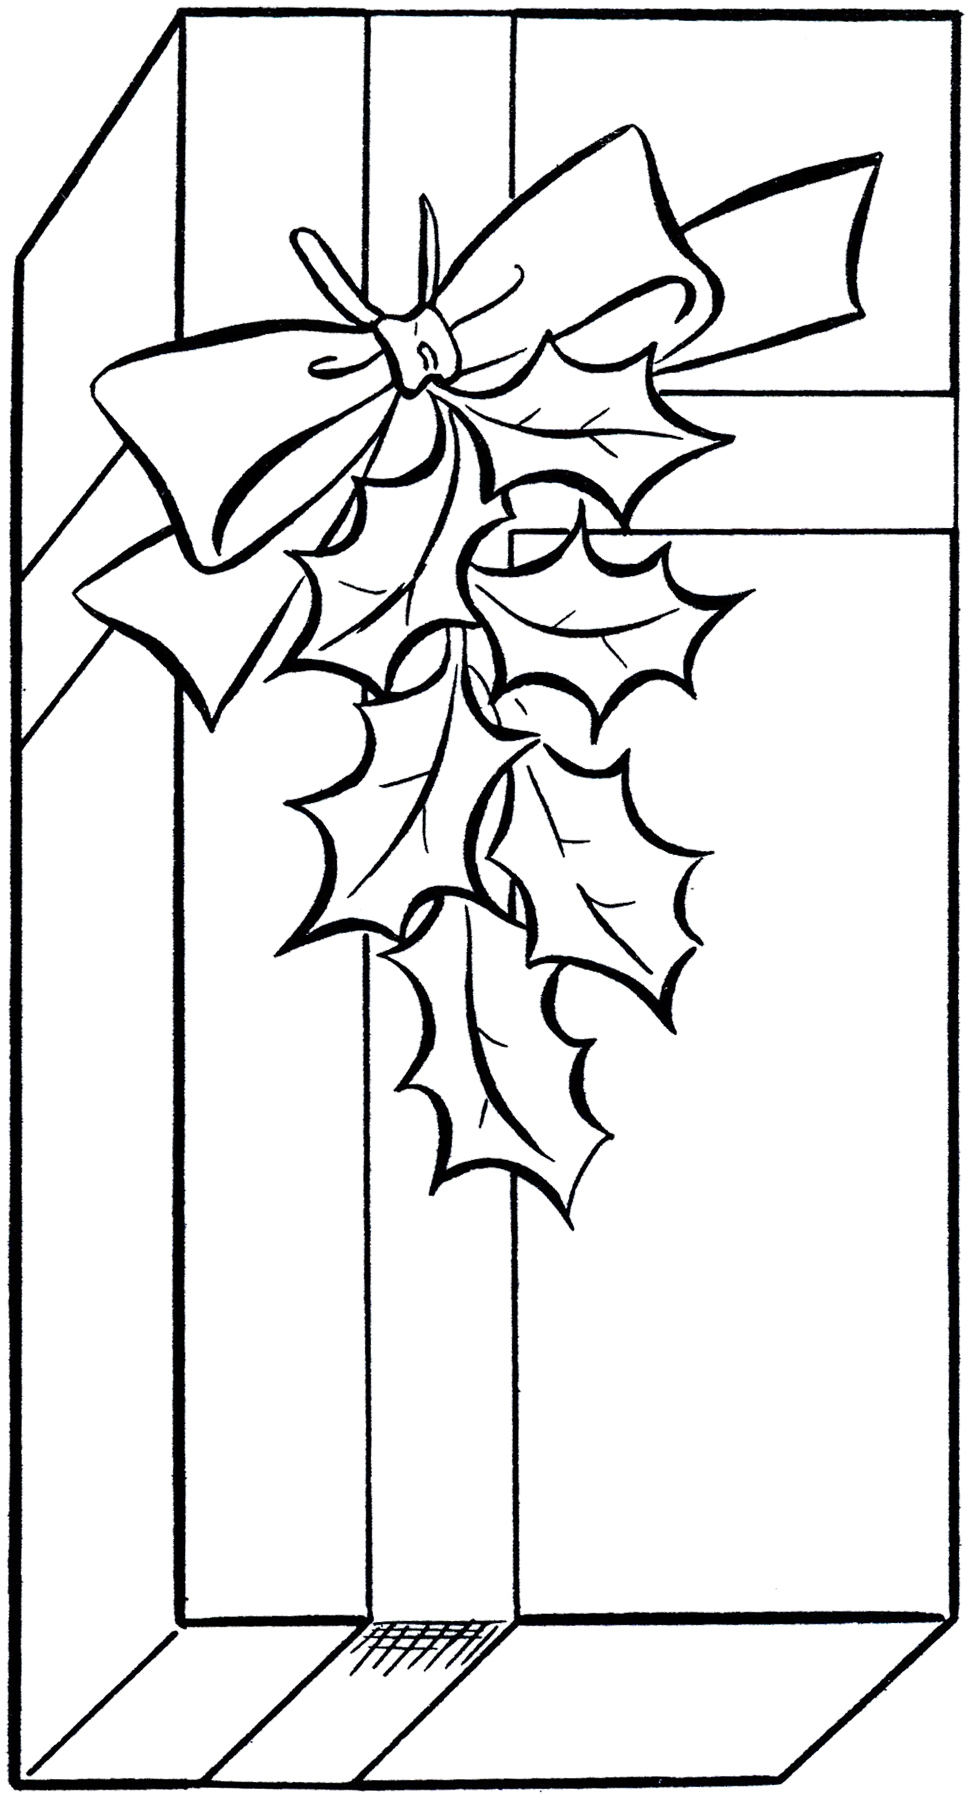 Rustic christmas clipart black and white present vector library stock Holiday Gift Clip Art Image - Coloring Page! - The Graphics ... vector library stock